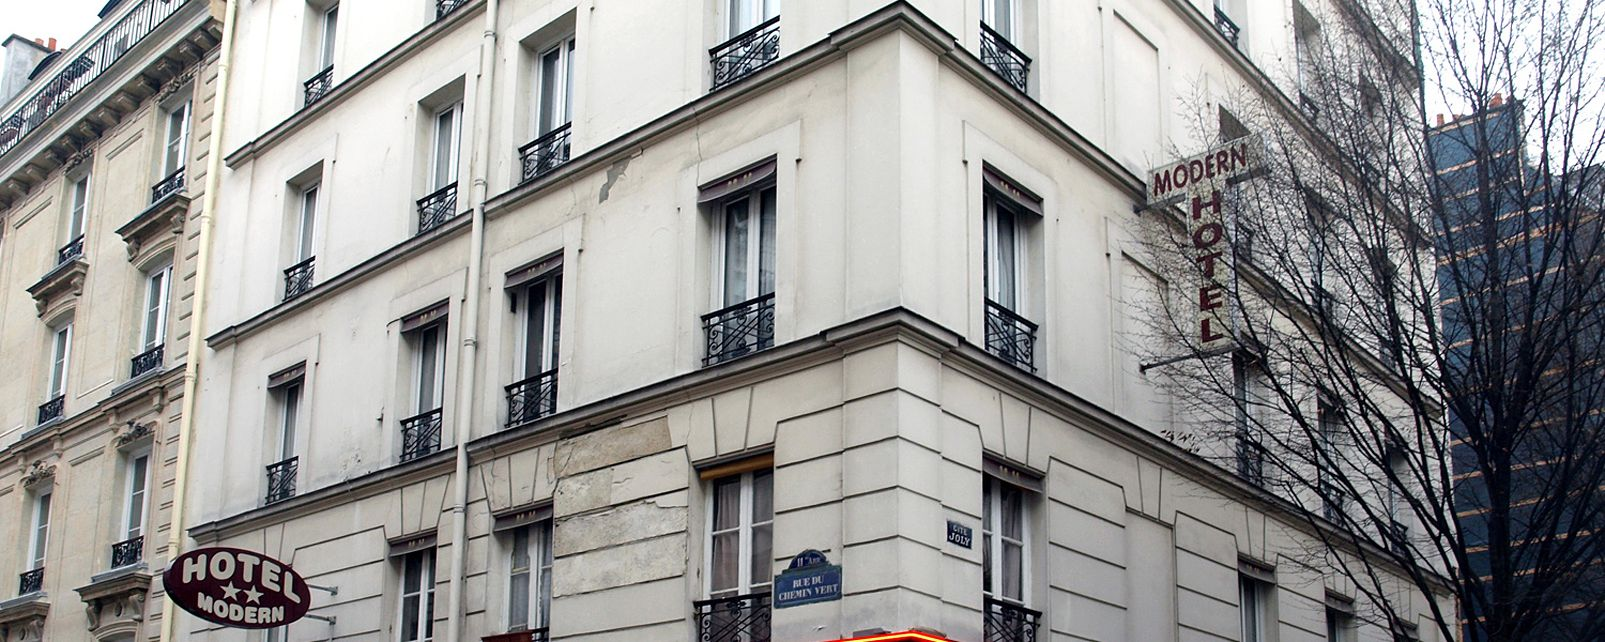 Hotel atel modern paris in for Hotel moderne paris